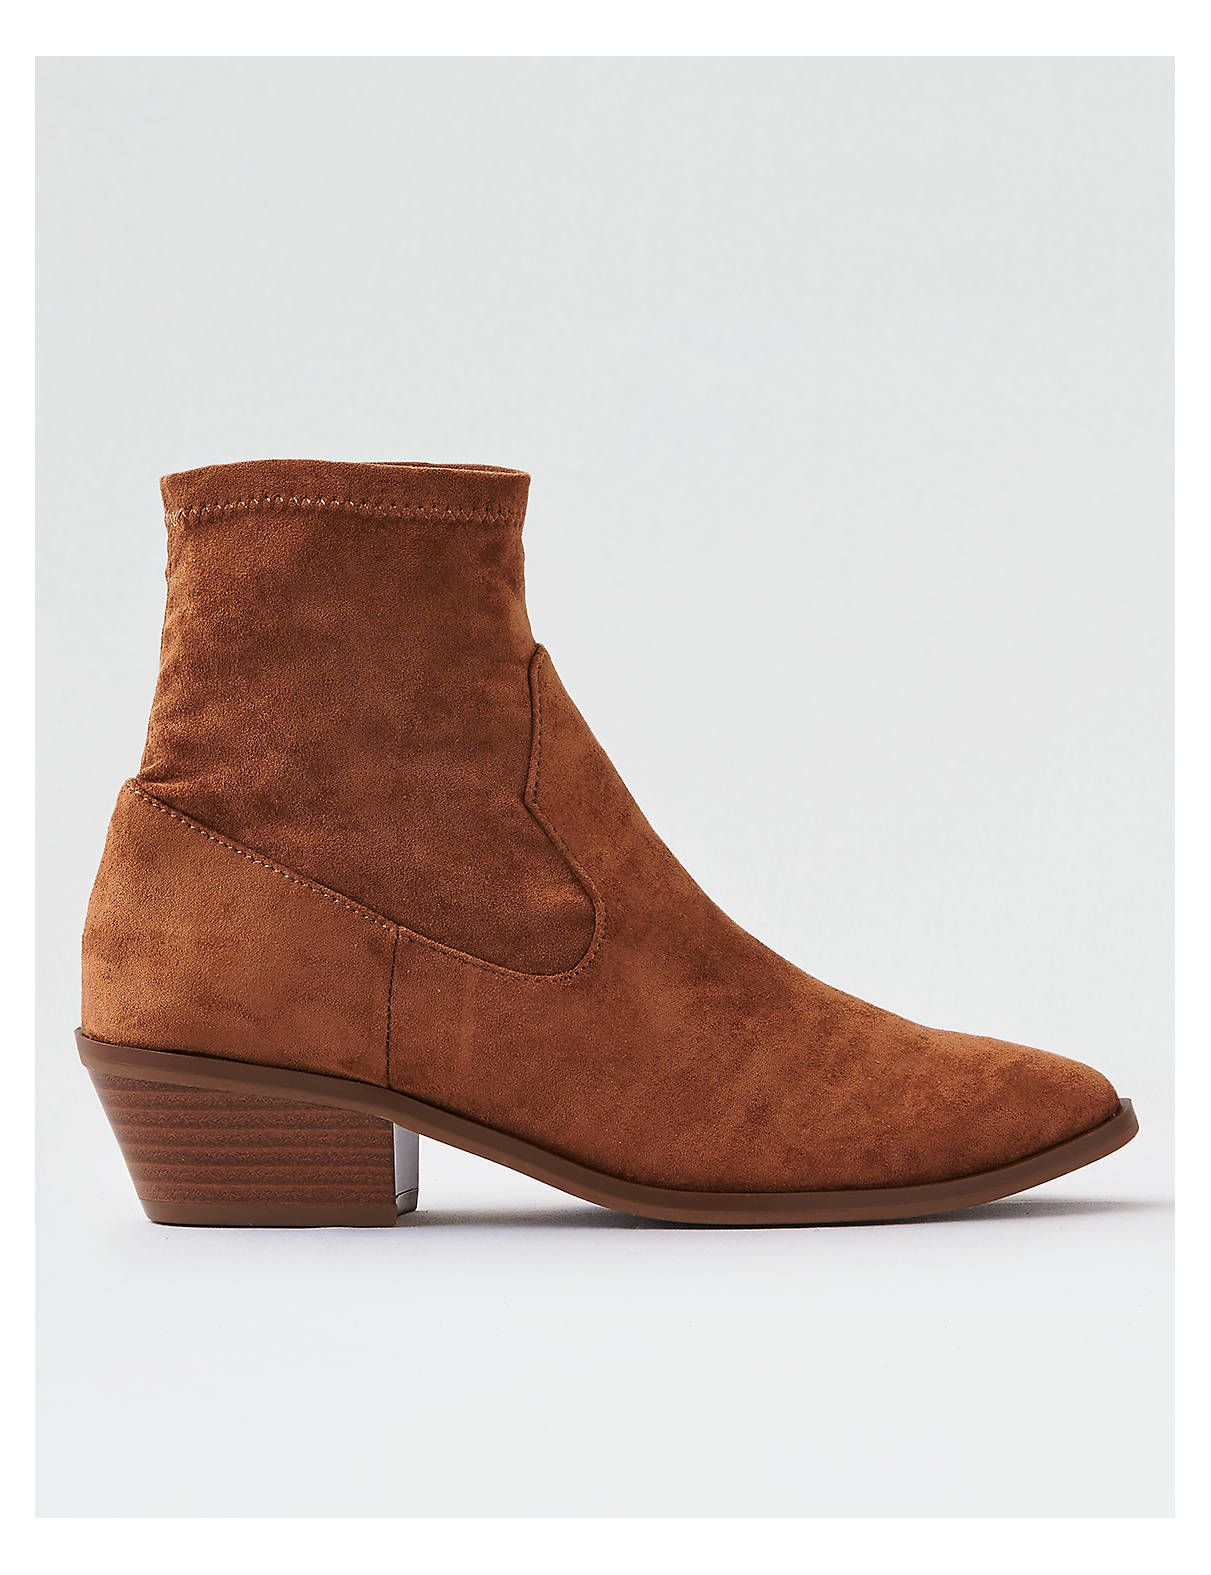 Aeo Sock Bootie Tan American Eagle Outfitters Shoes